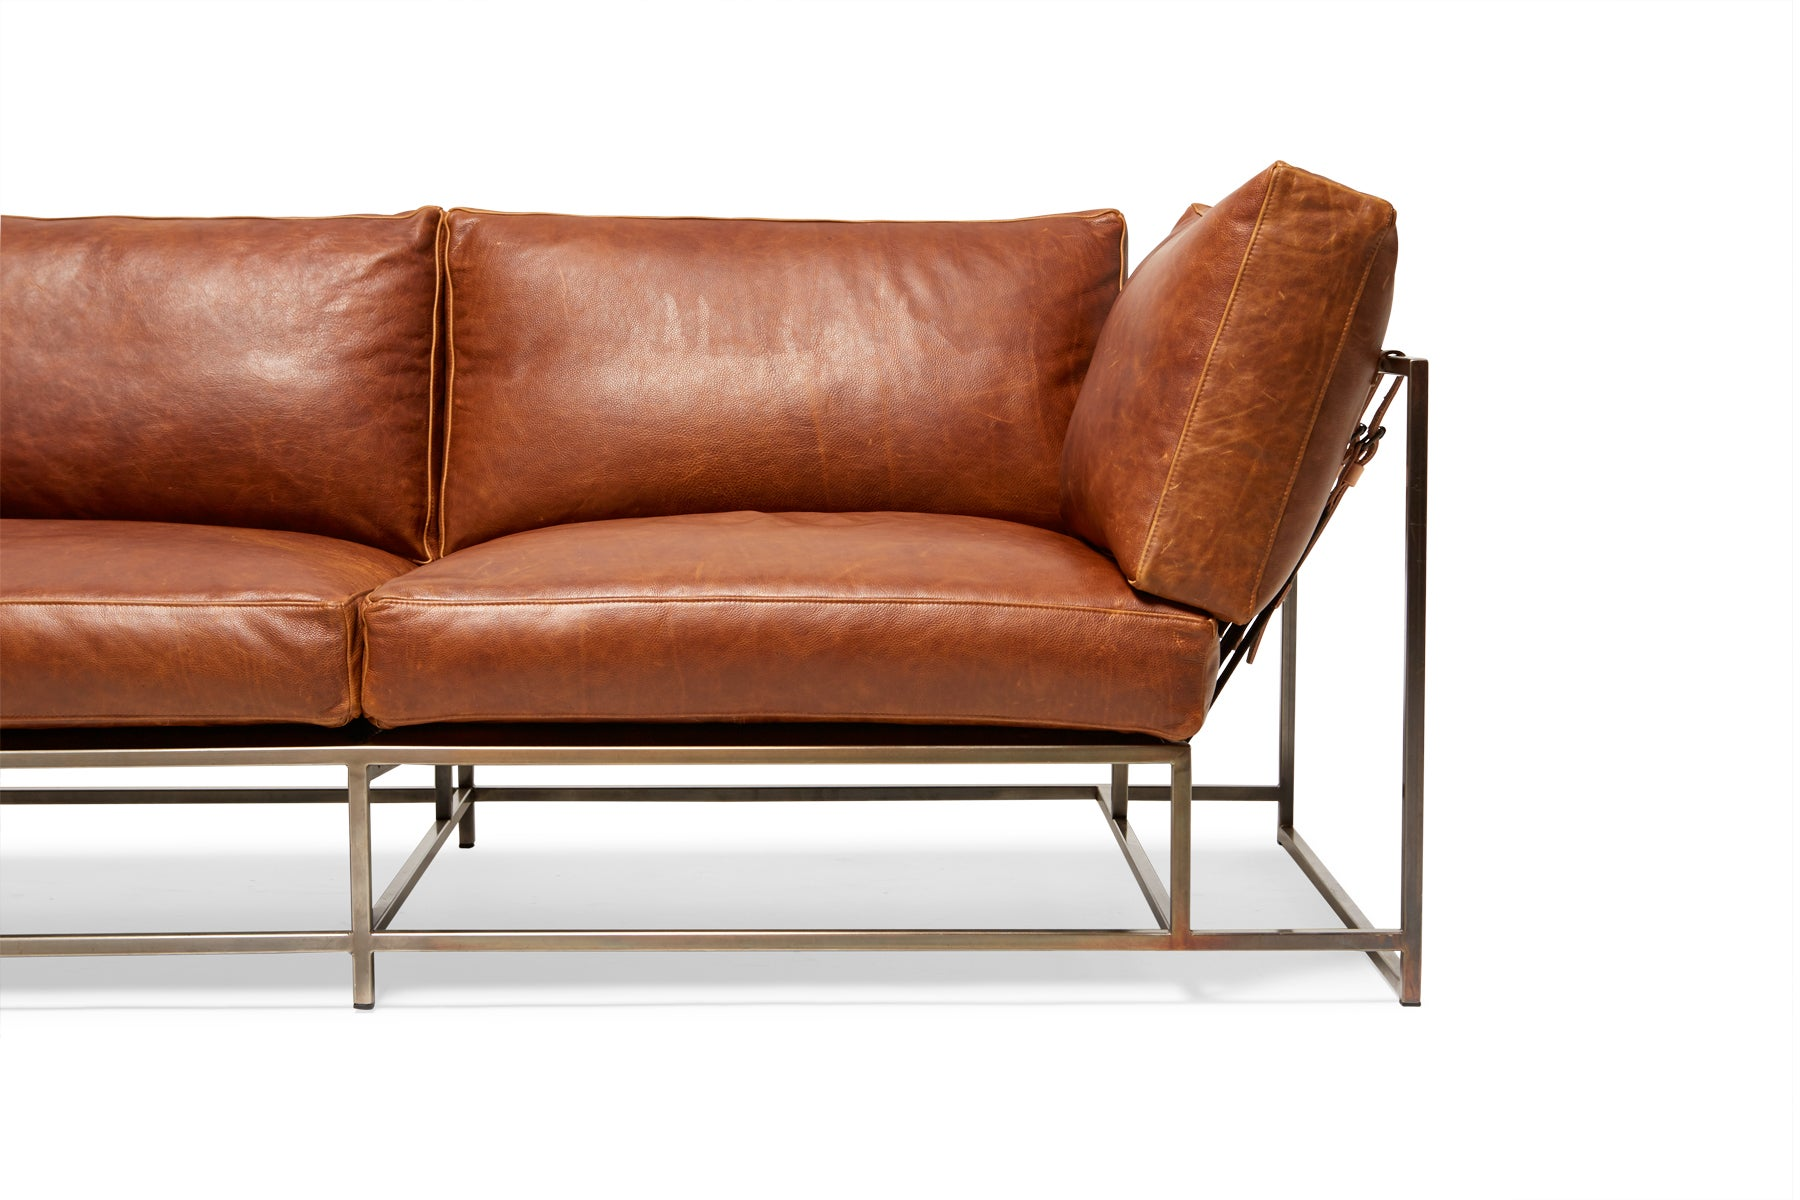 Potomac Leather And Antique Nickel Two Seat Sofa For Sale At 1stdibs